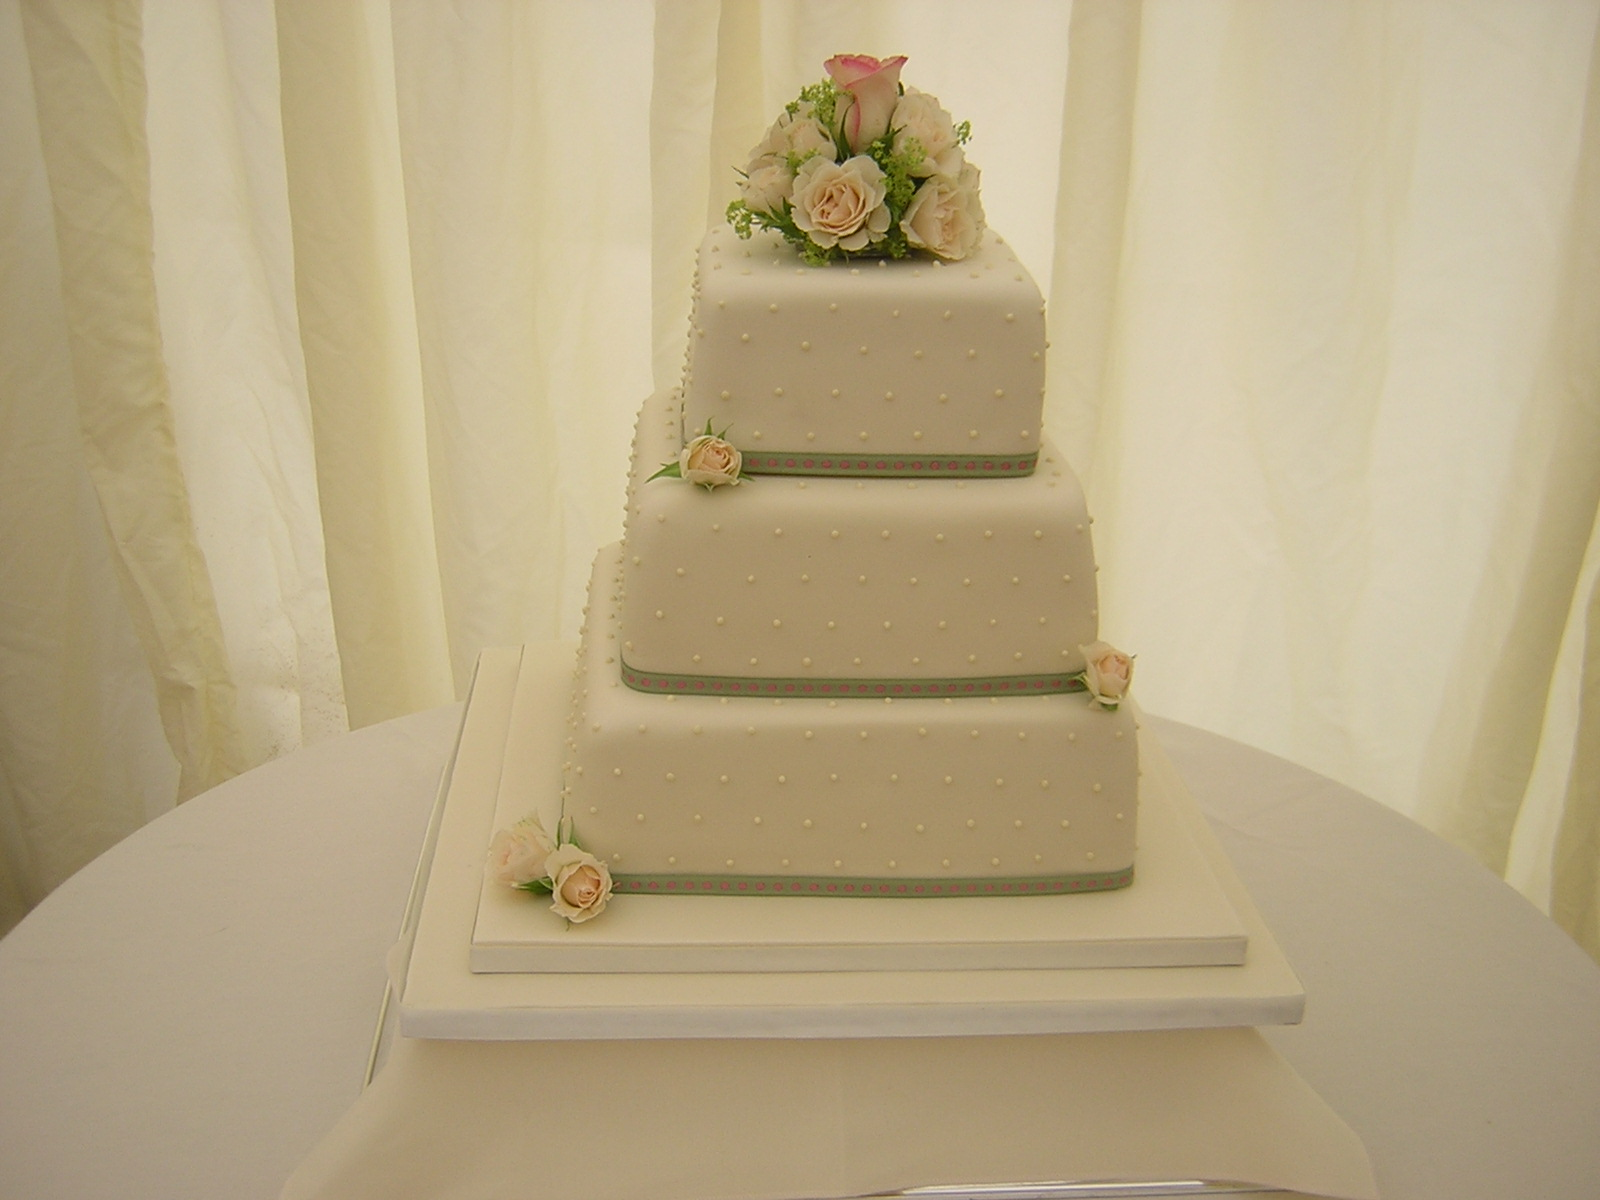 How Much Do Wedding Cakes From Walmart Cost